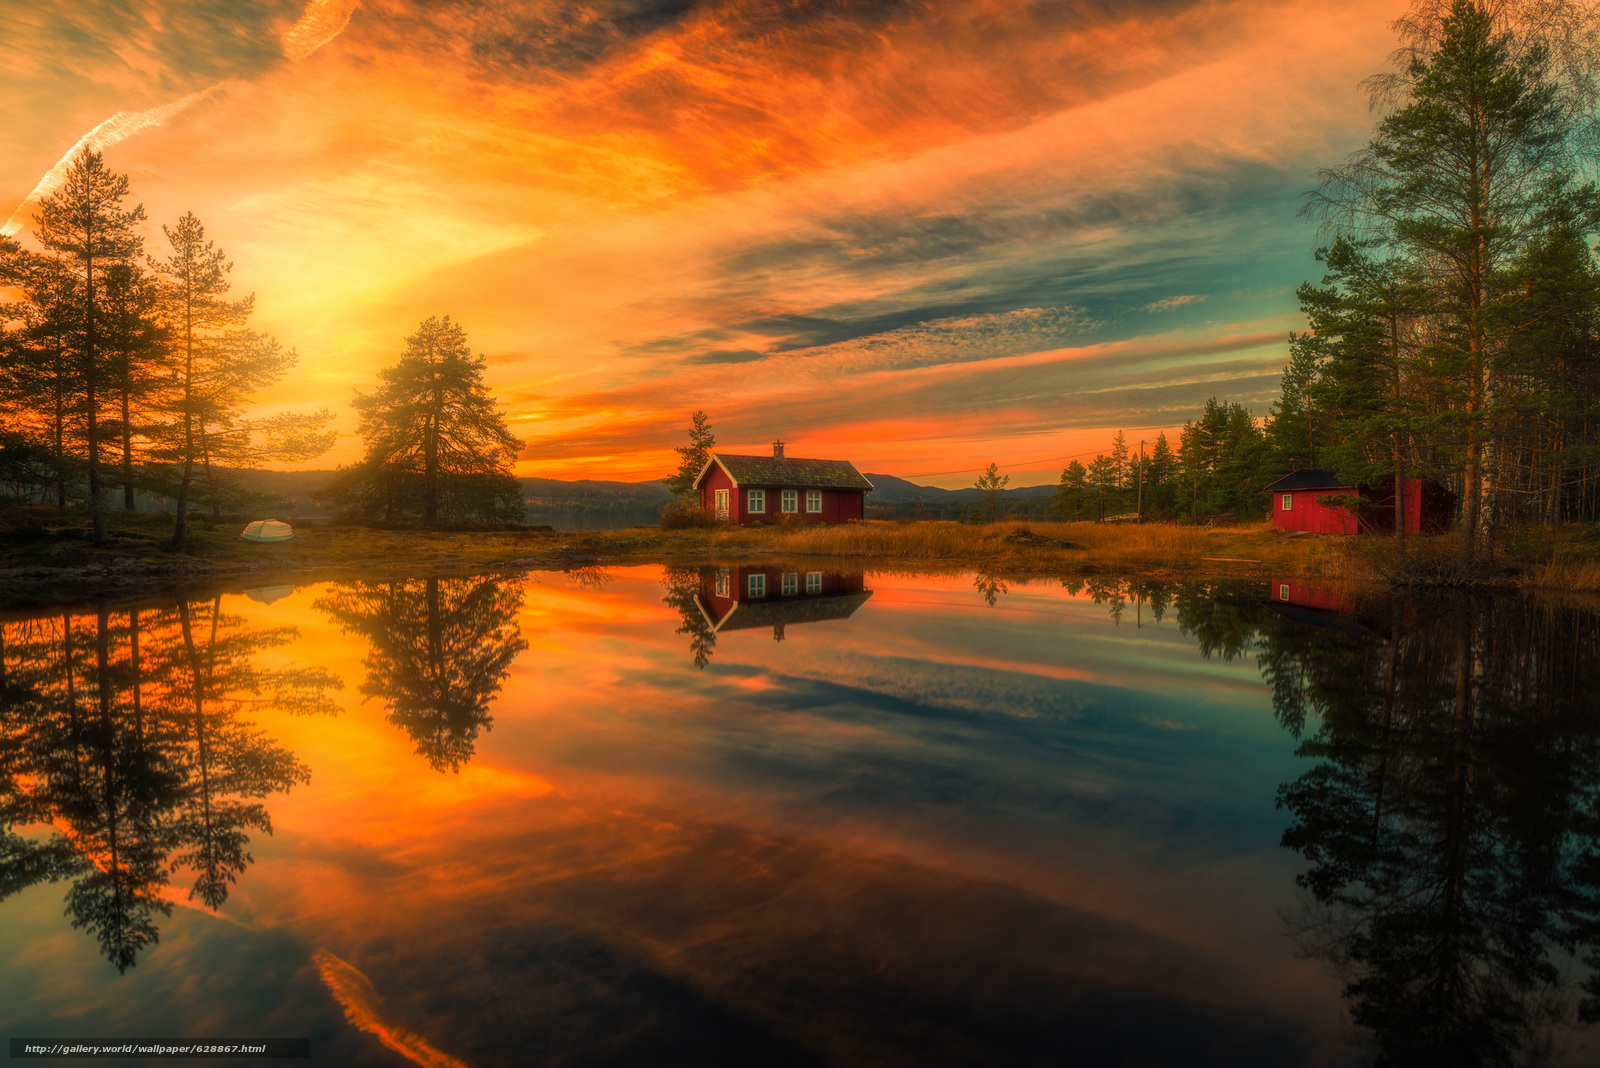 Ringerike, Norway, norway, lake, reflection, home, sunset, trees